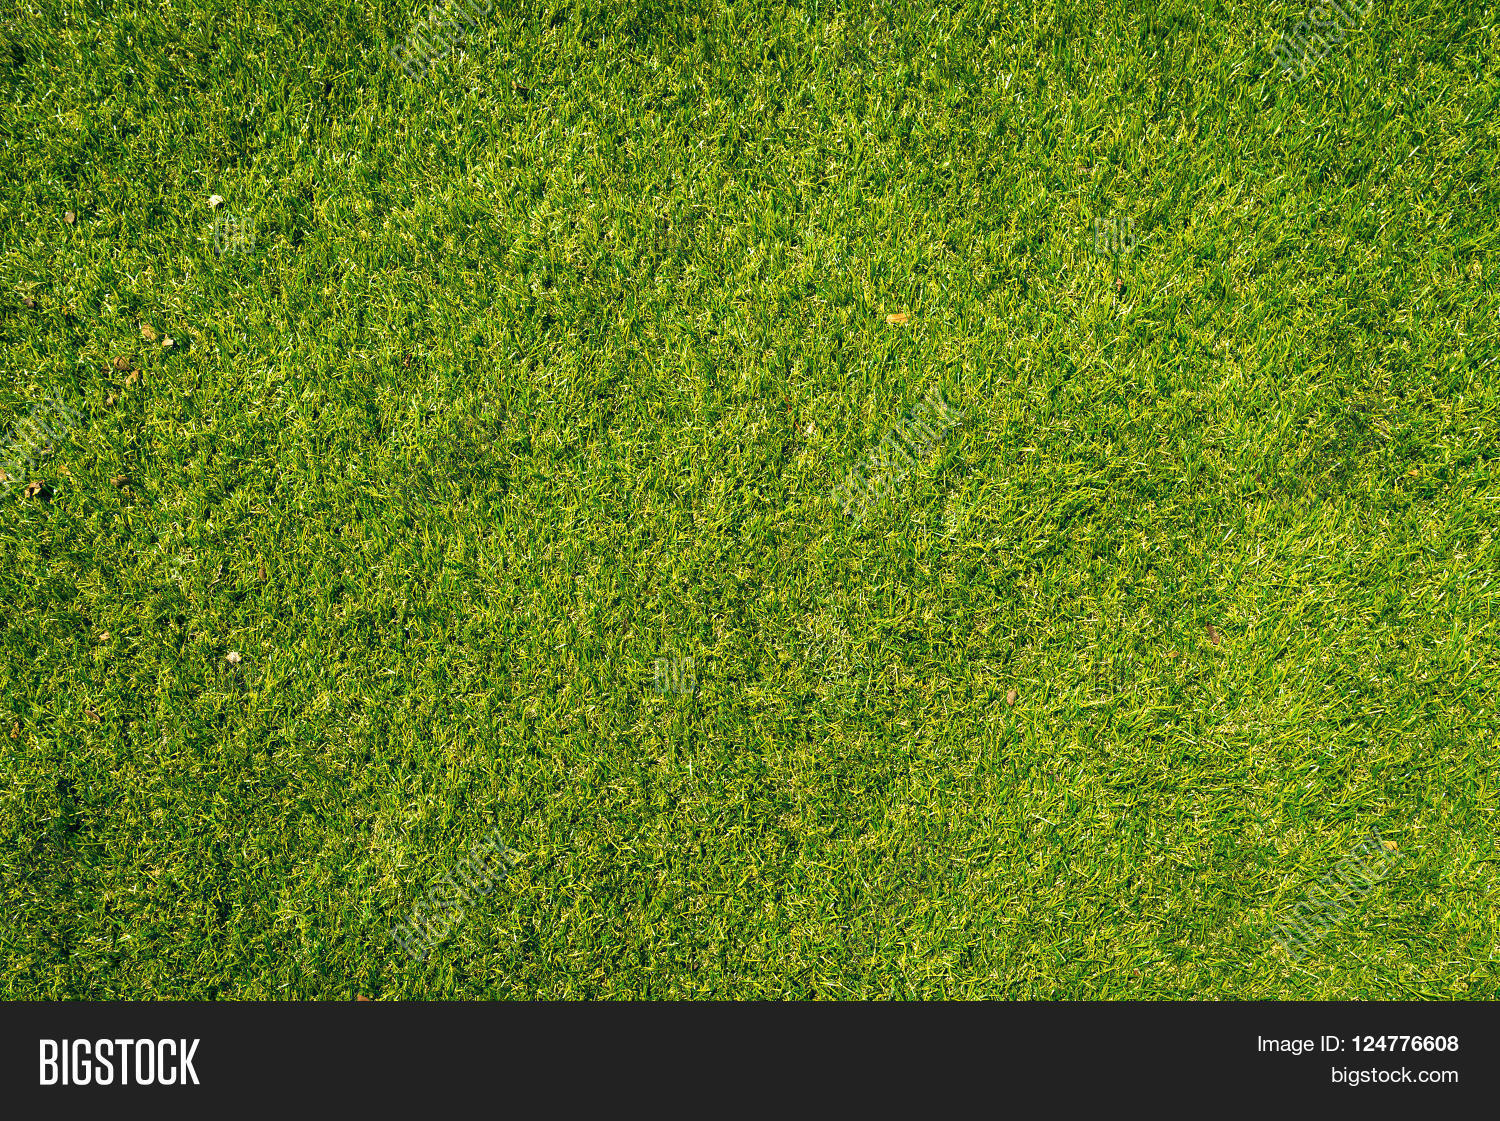 Natural Grass Texture Patterned Image & Photo | Bigstock